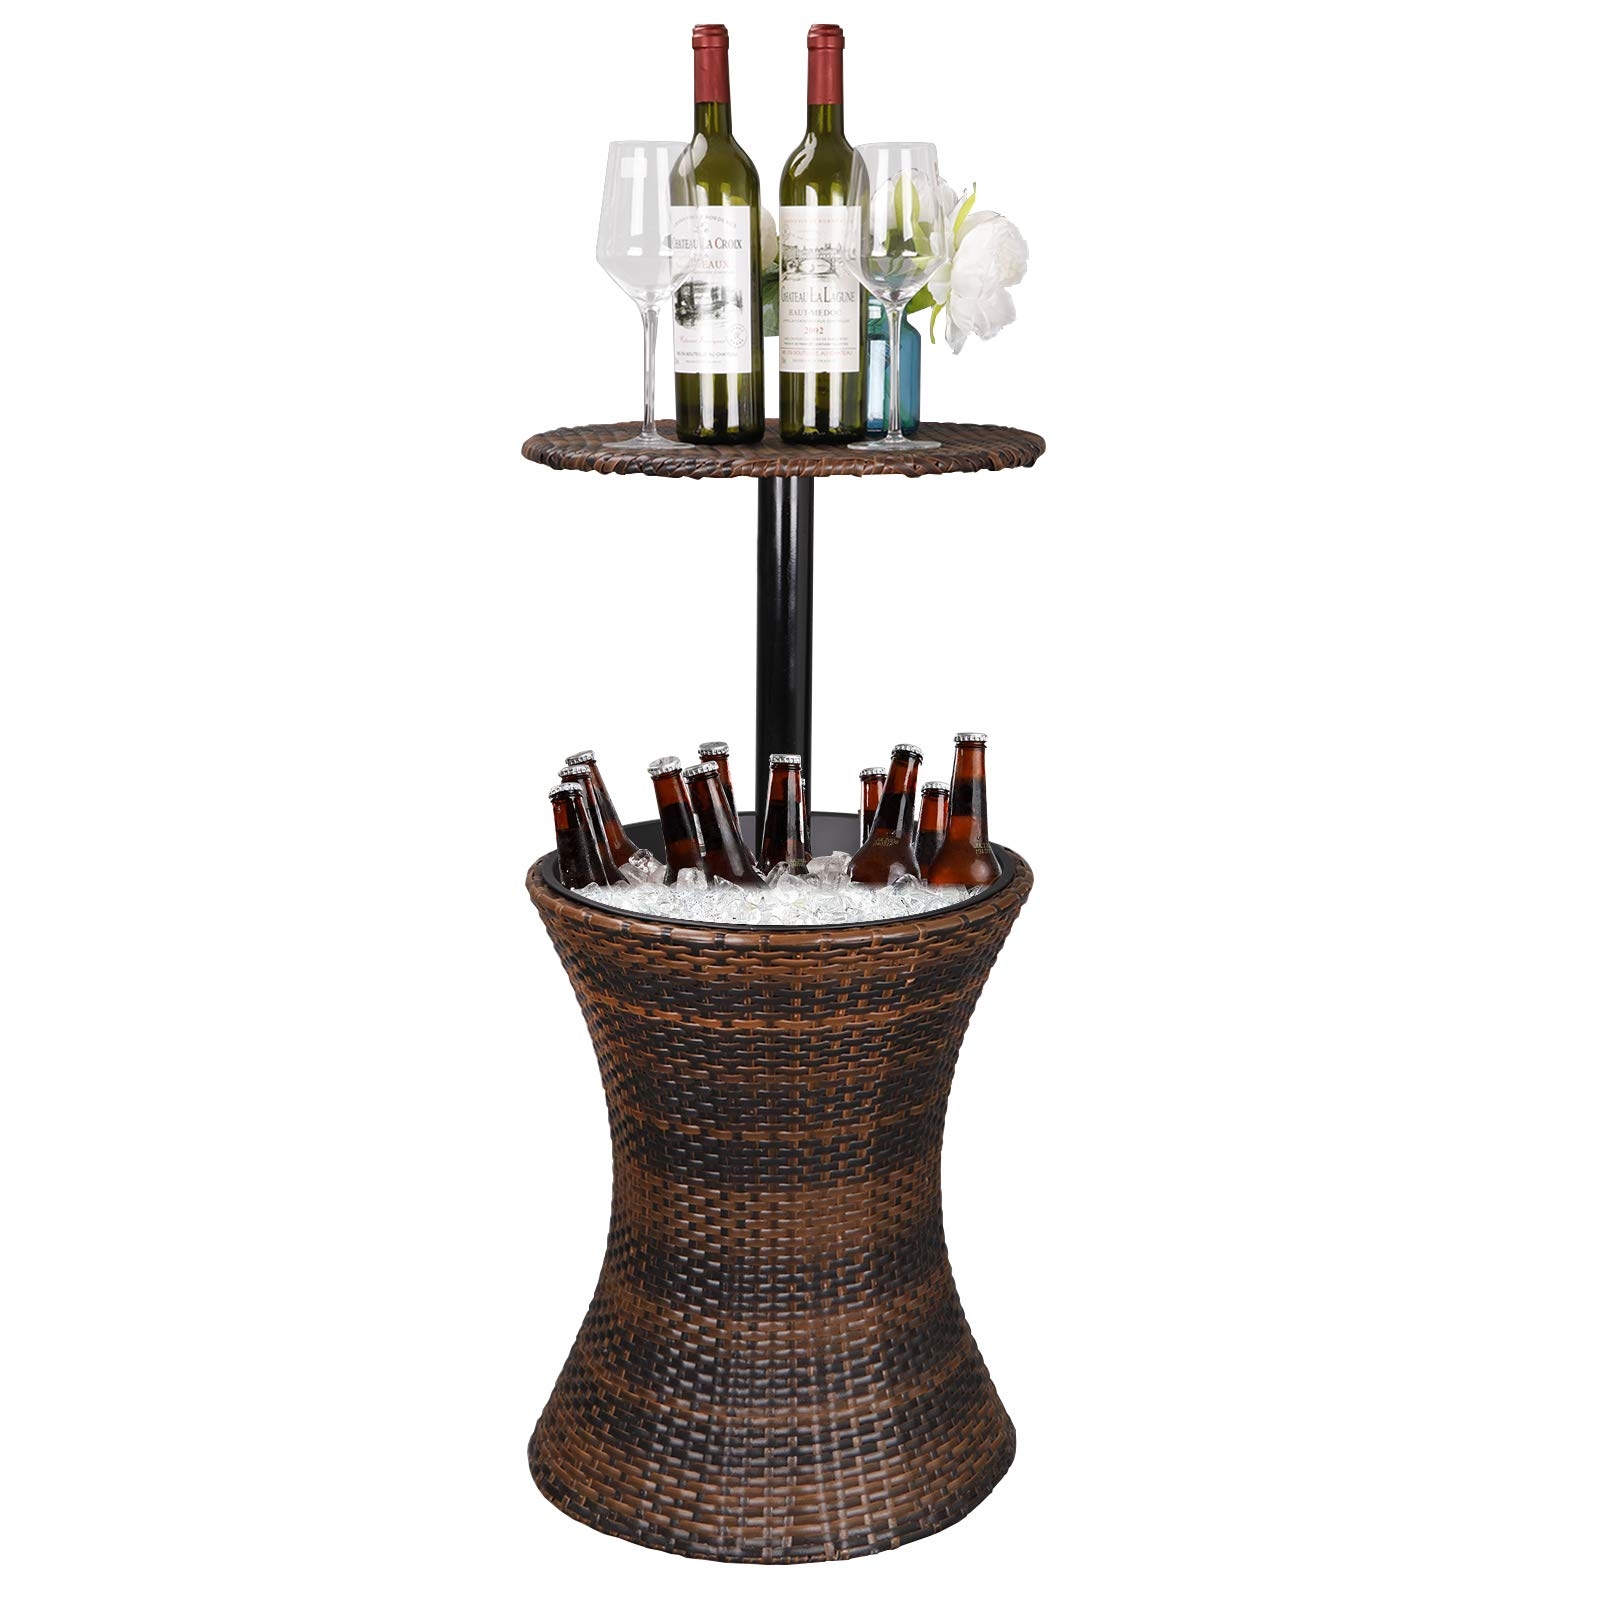 ZENY 5.5 Gallon Cool Bar Rattan Style Patio Pool Cooler Table W/Height Adjustable Top Outdoor Wicker Ice Bucket Cocktail Coffee Table for Party Deck Pool Use, Brown by ZENY (Image #1)